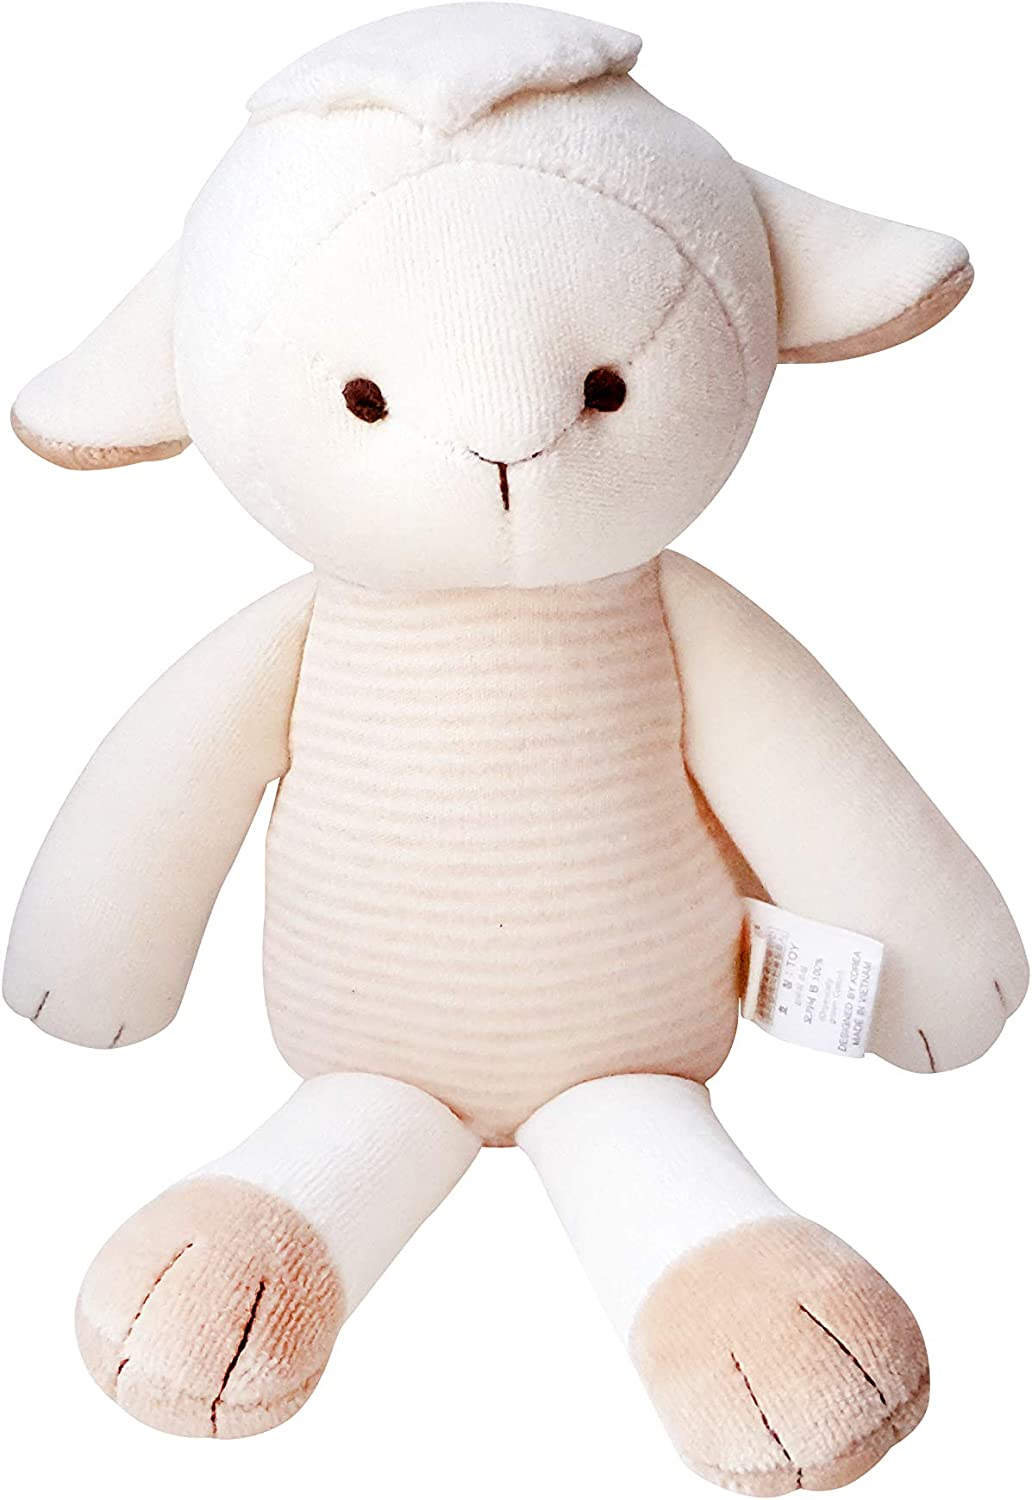 Blessnature] 100% Organic Stuffed Animal, Baby Doll, Tri-Colored Plush Toy (Jesus The Lamb)_12in